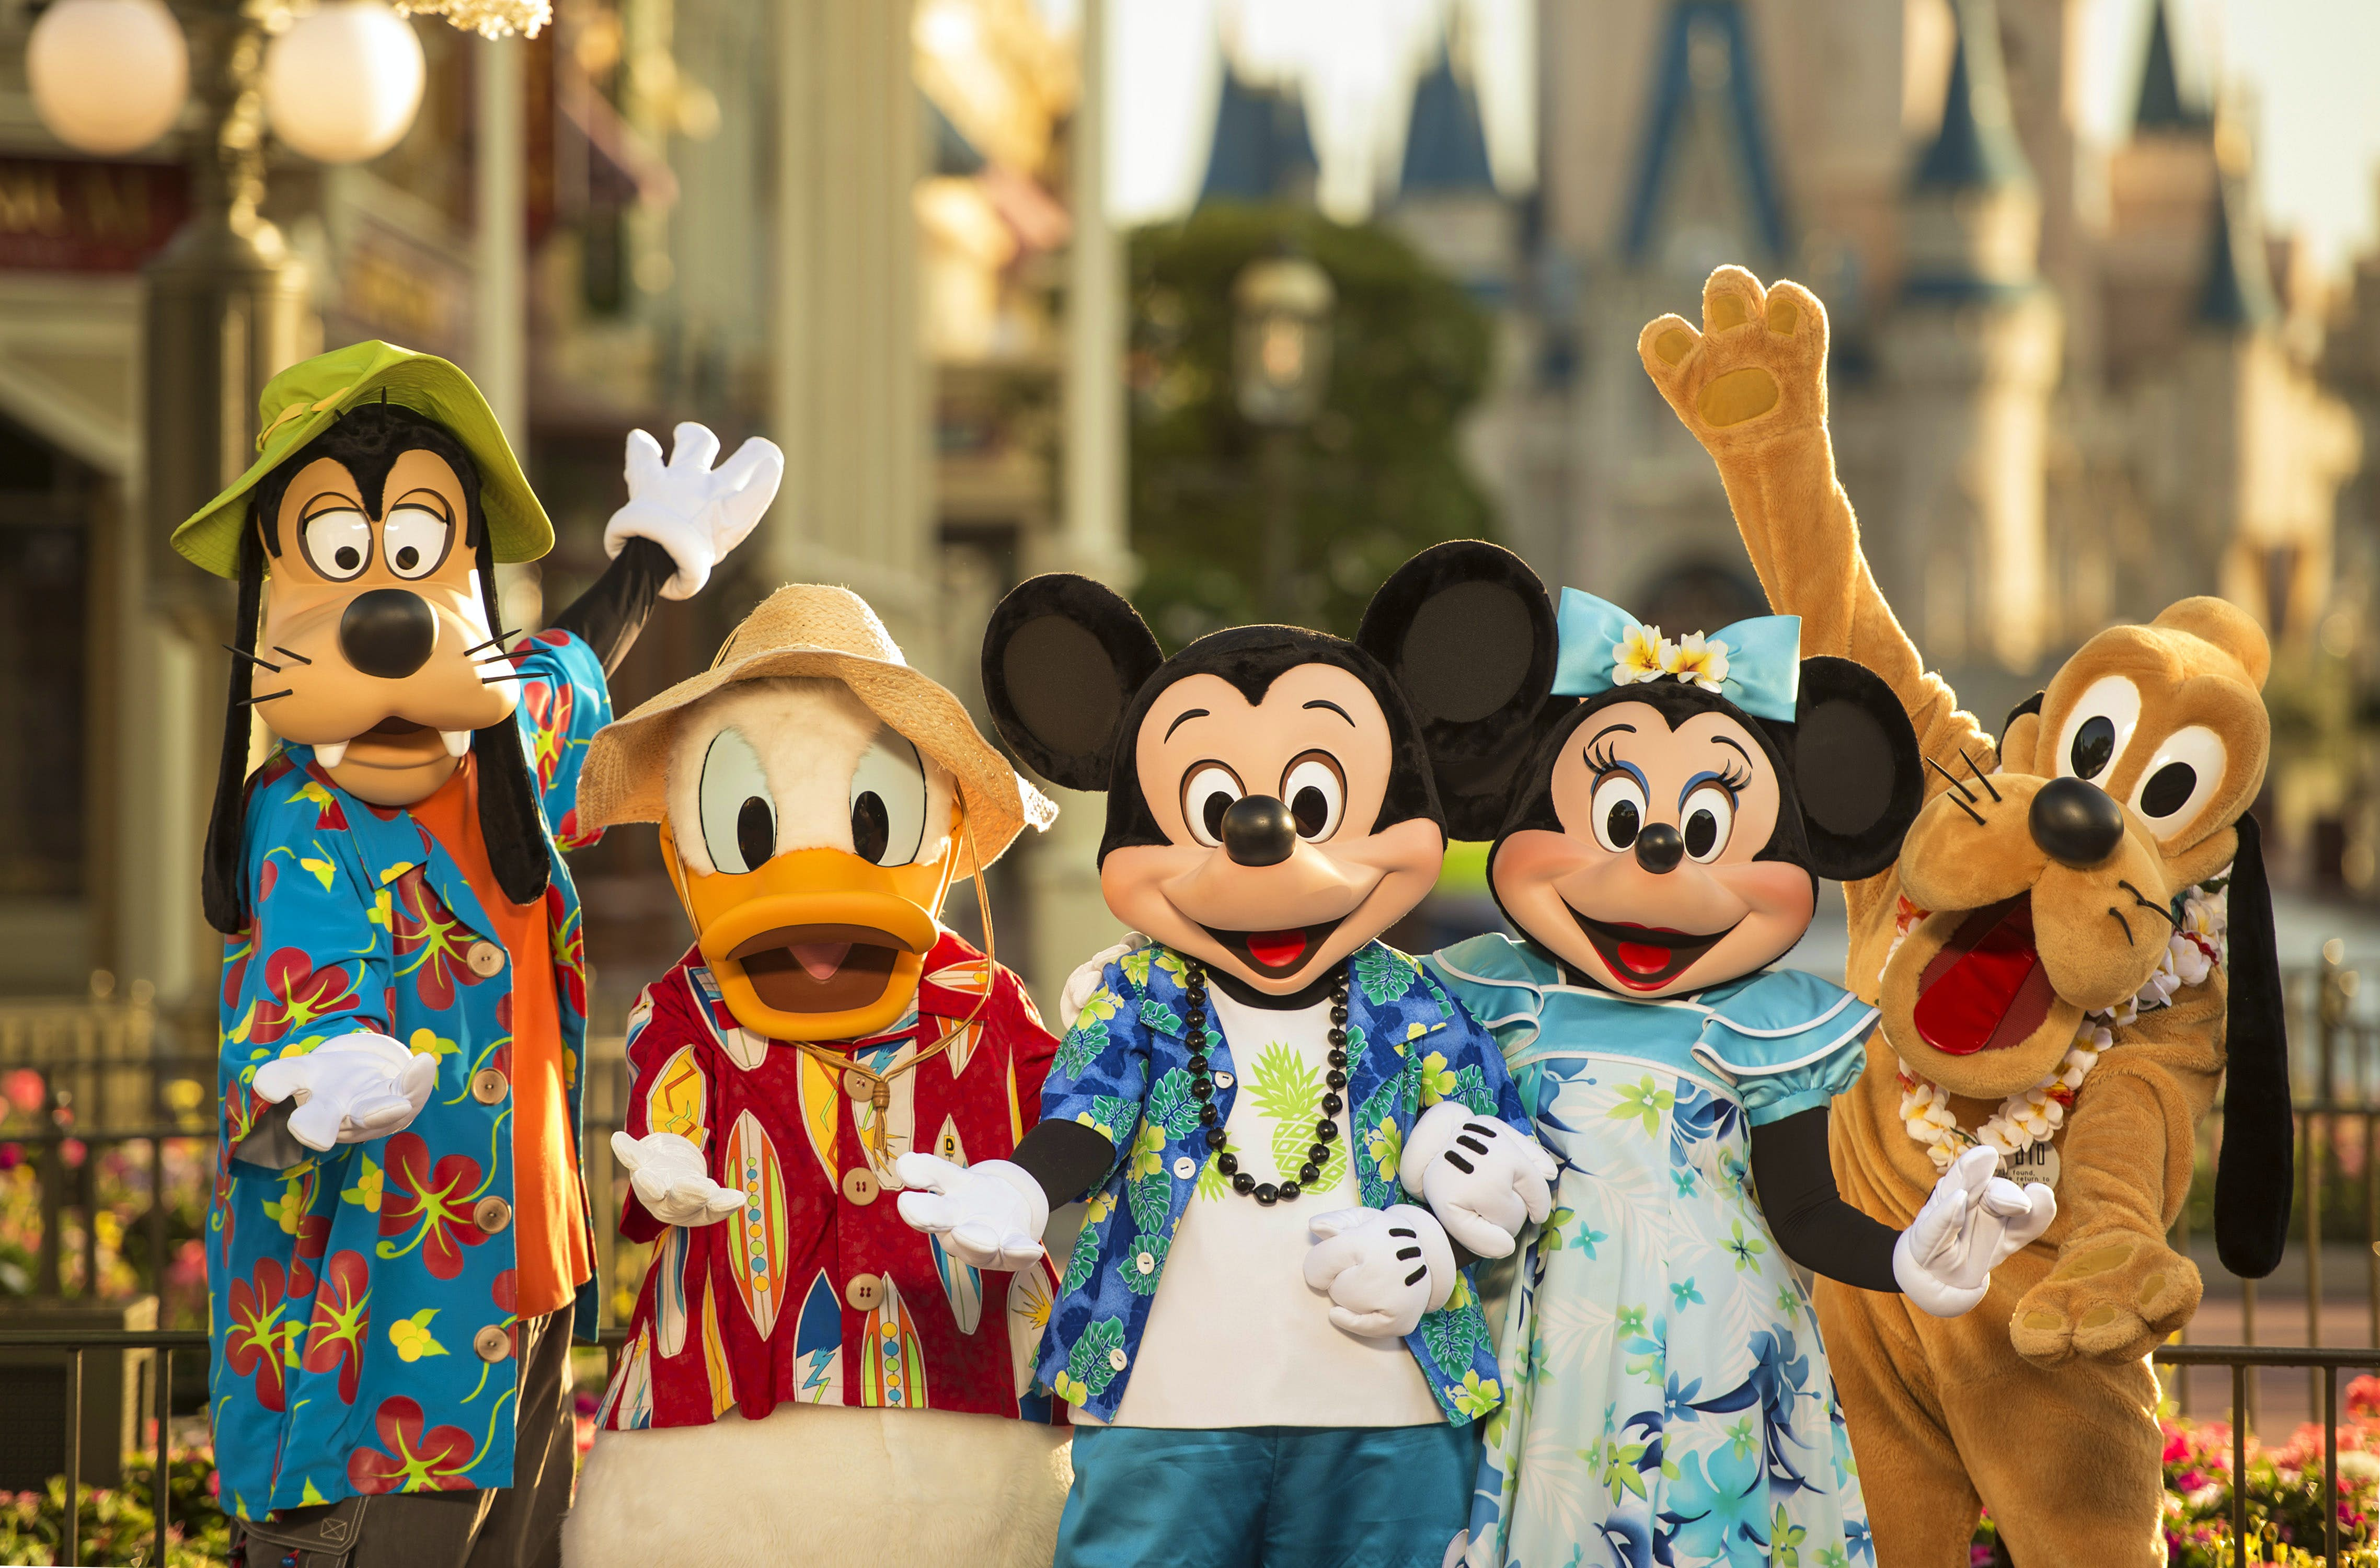 Goofy, Donald Duck, Mickey and Minnie Mouse and Pluto all pose hands outstretched in Hawaiian print clothing